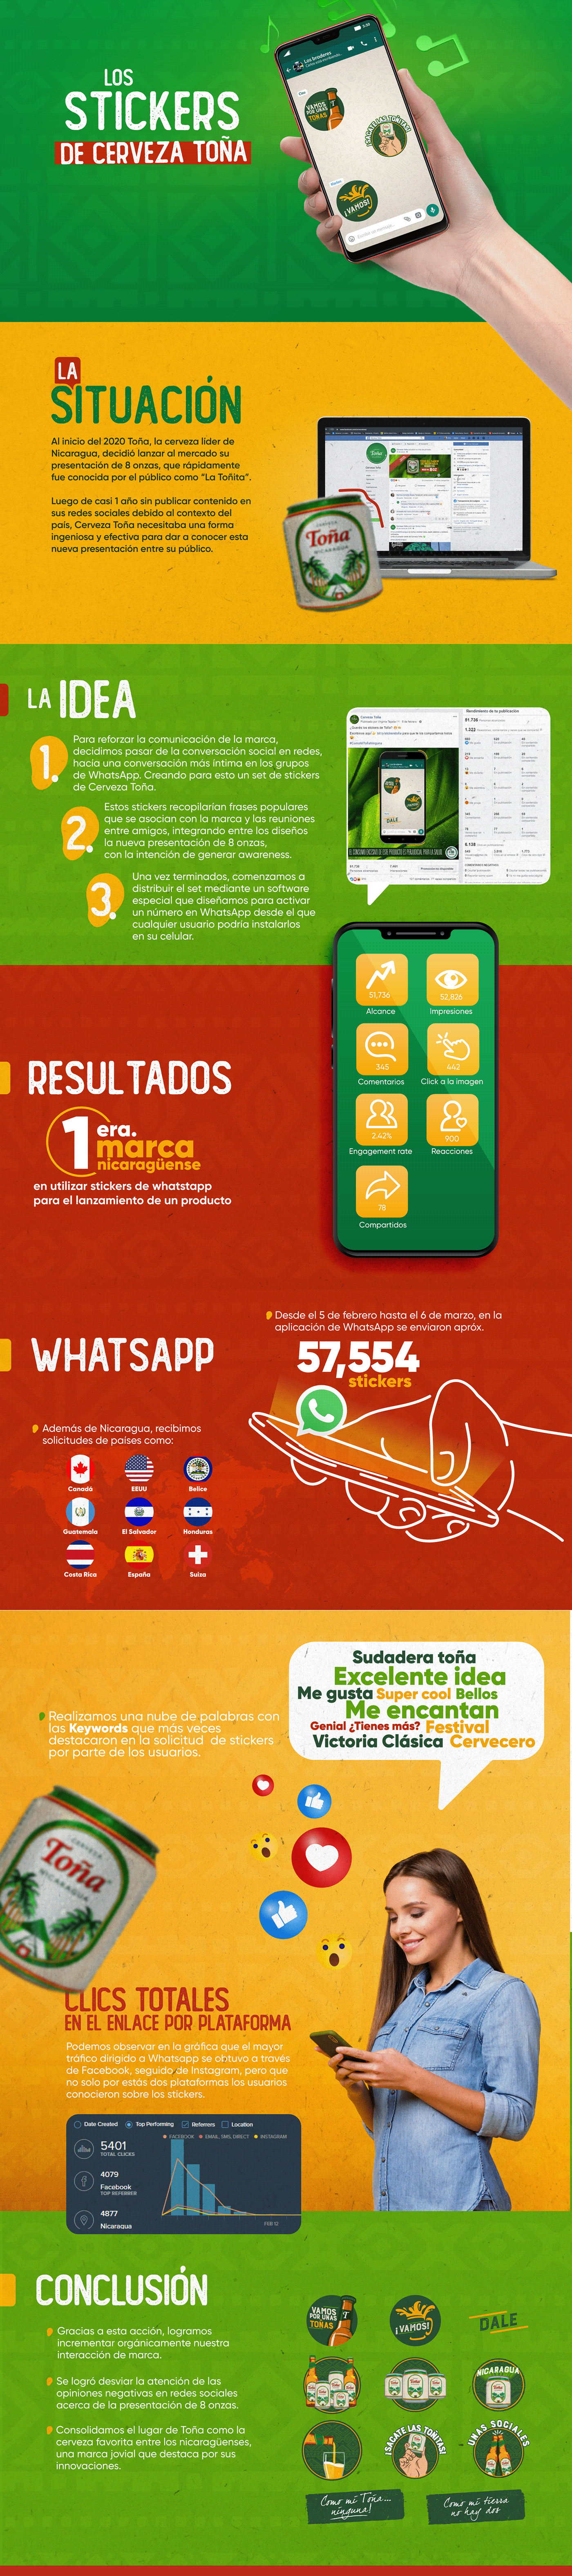 Advertising  beer Cerveza Toña graphic design  innovation nicaragua social media stickers TOÑA WhatsApp